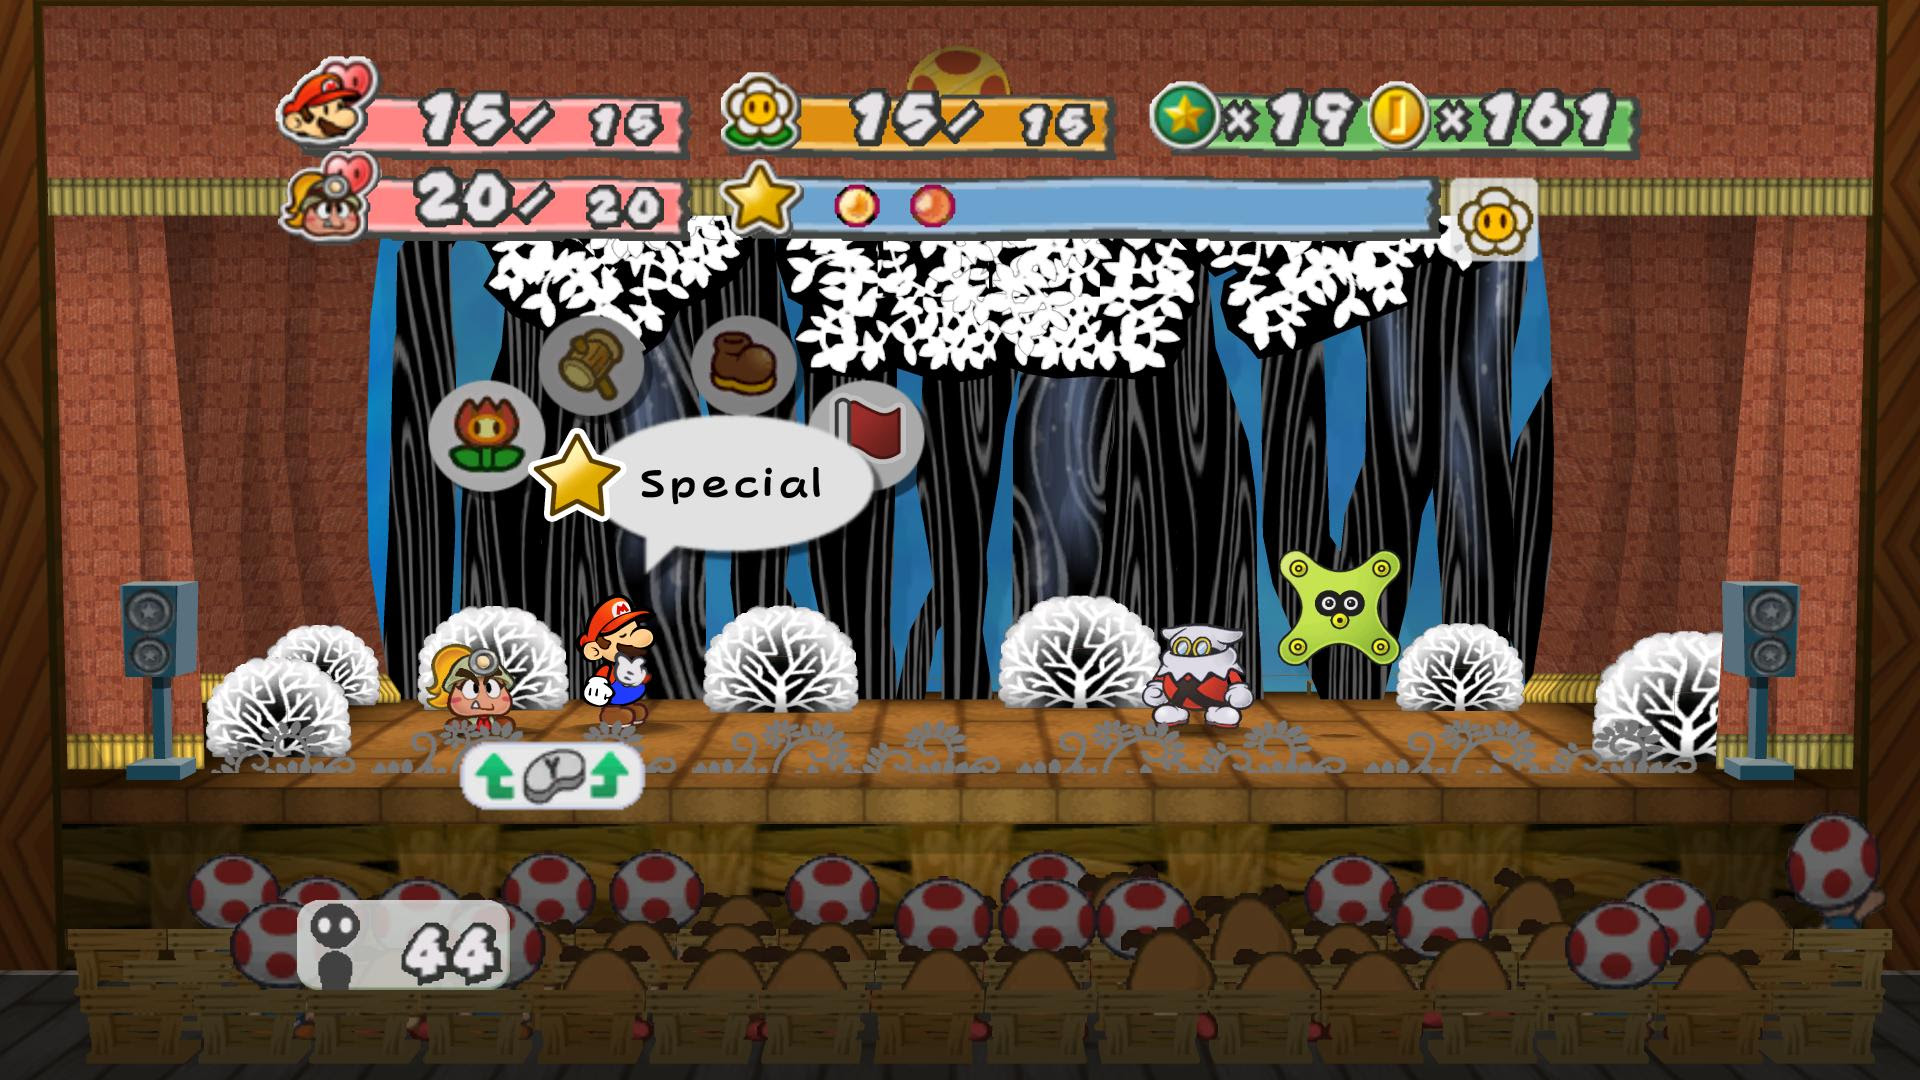 Paper Mario Ttyd Hd Texture Pack V1 9 April 1st 2020